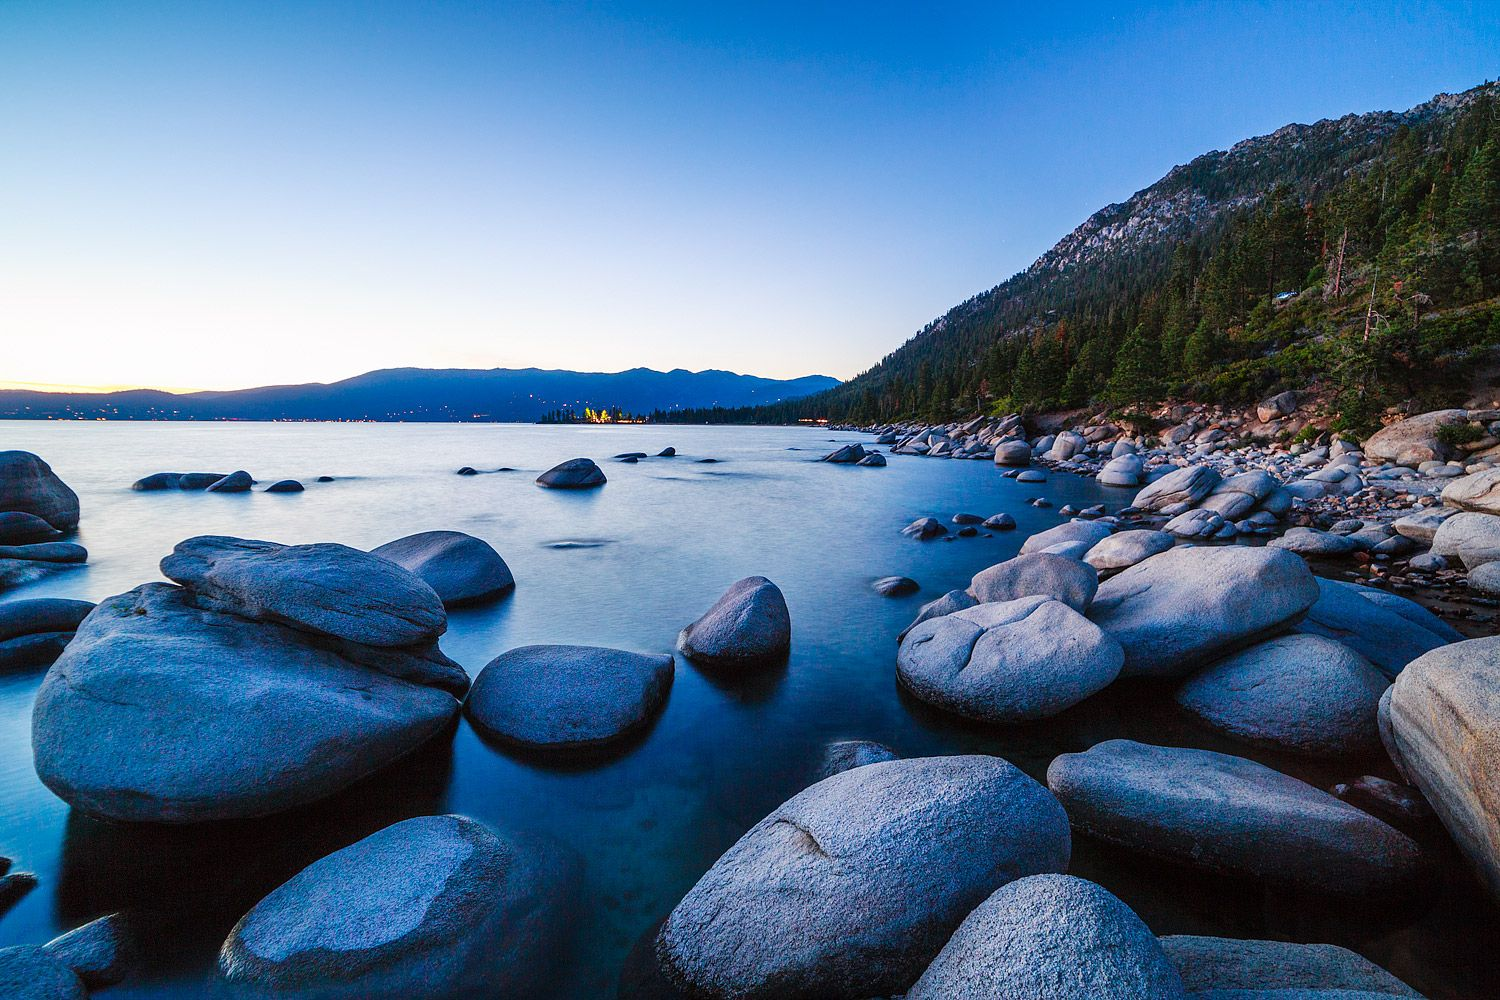 Pin On Travel And Landscape Photography